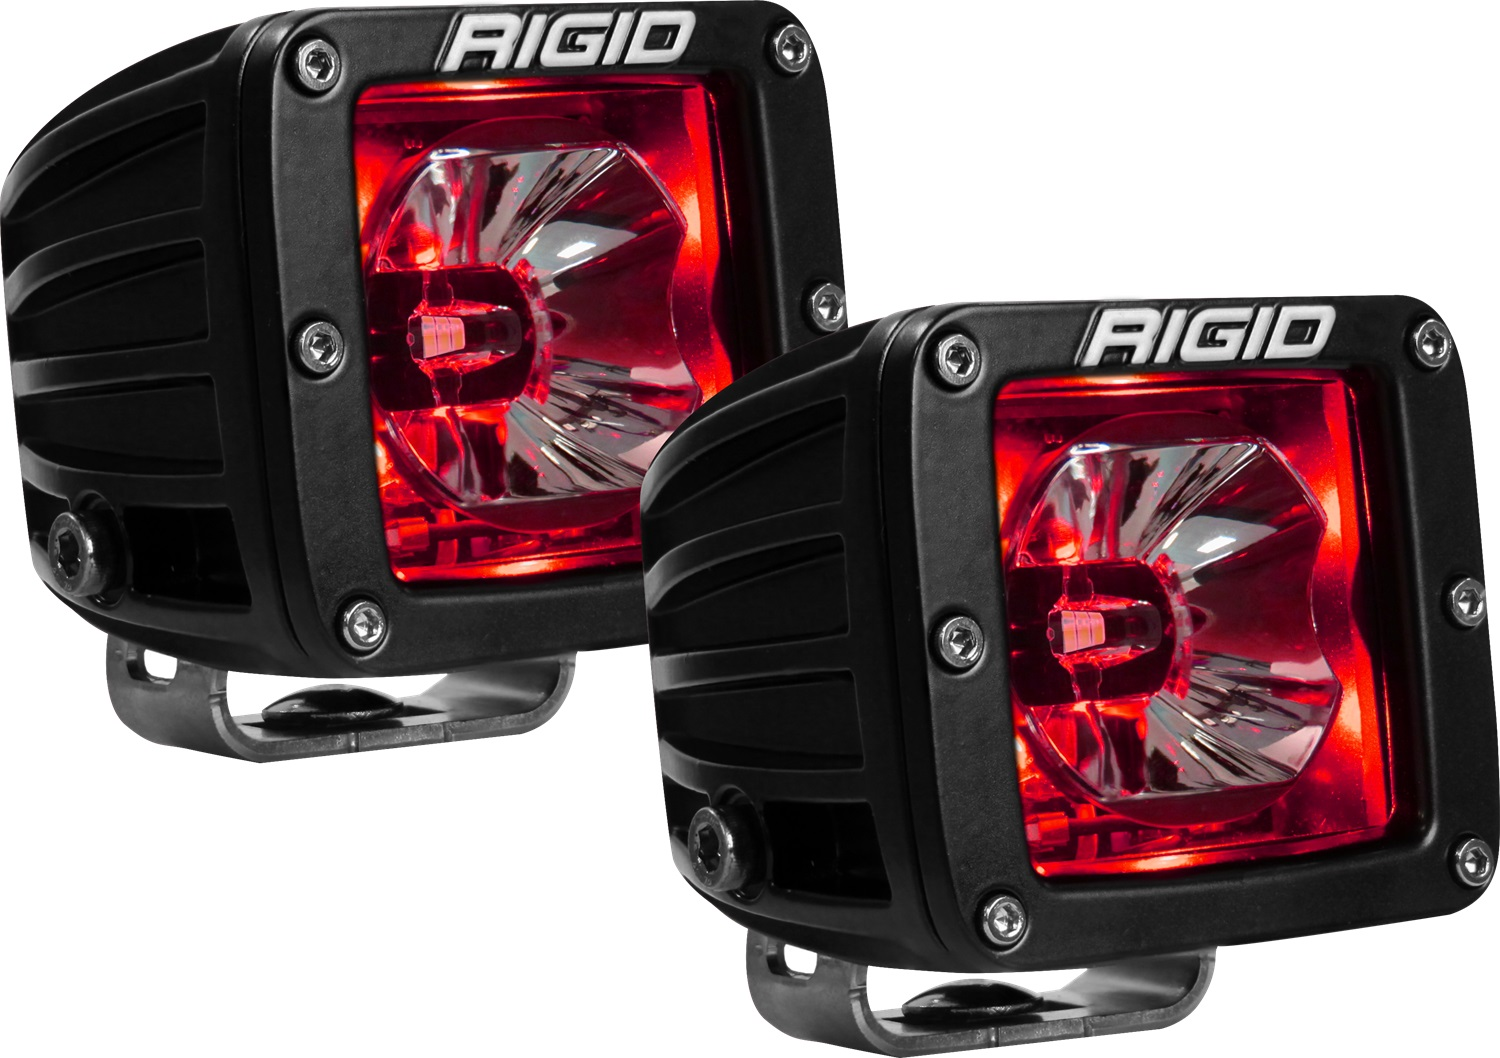 Rigid Industries 20202 Radiance Pod